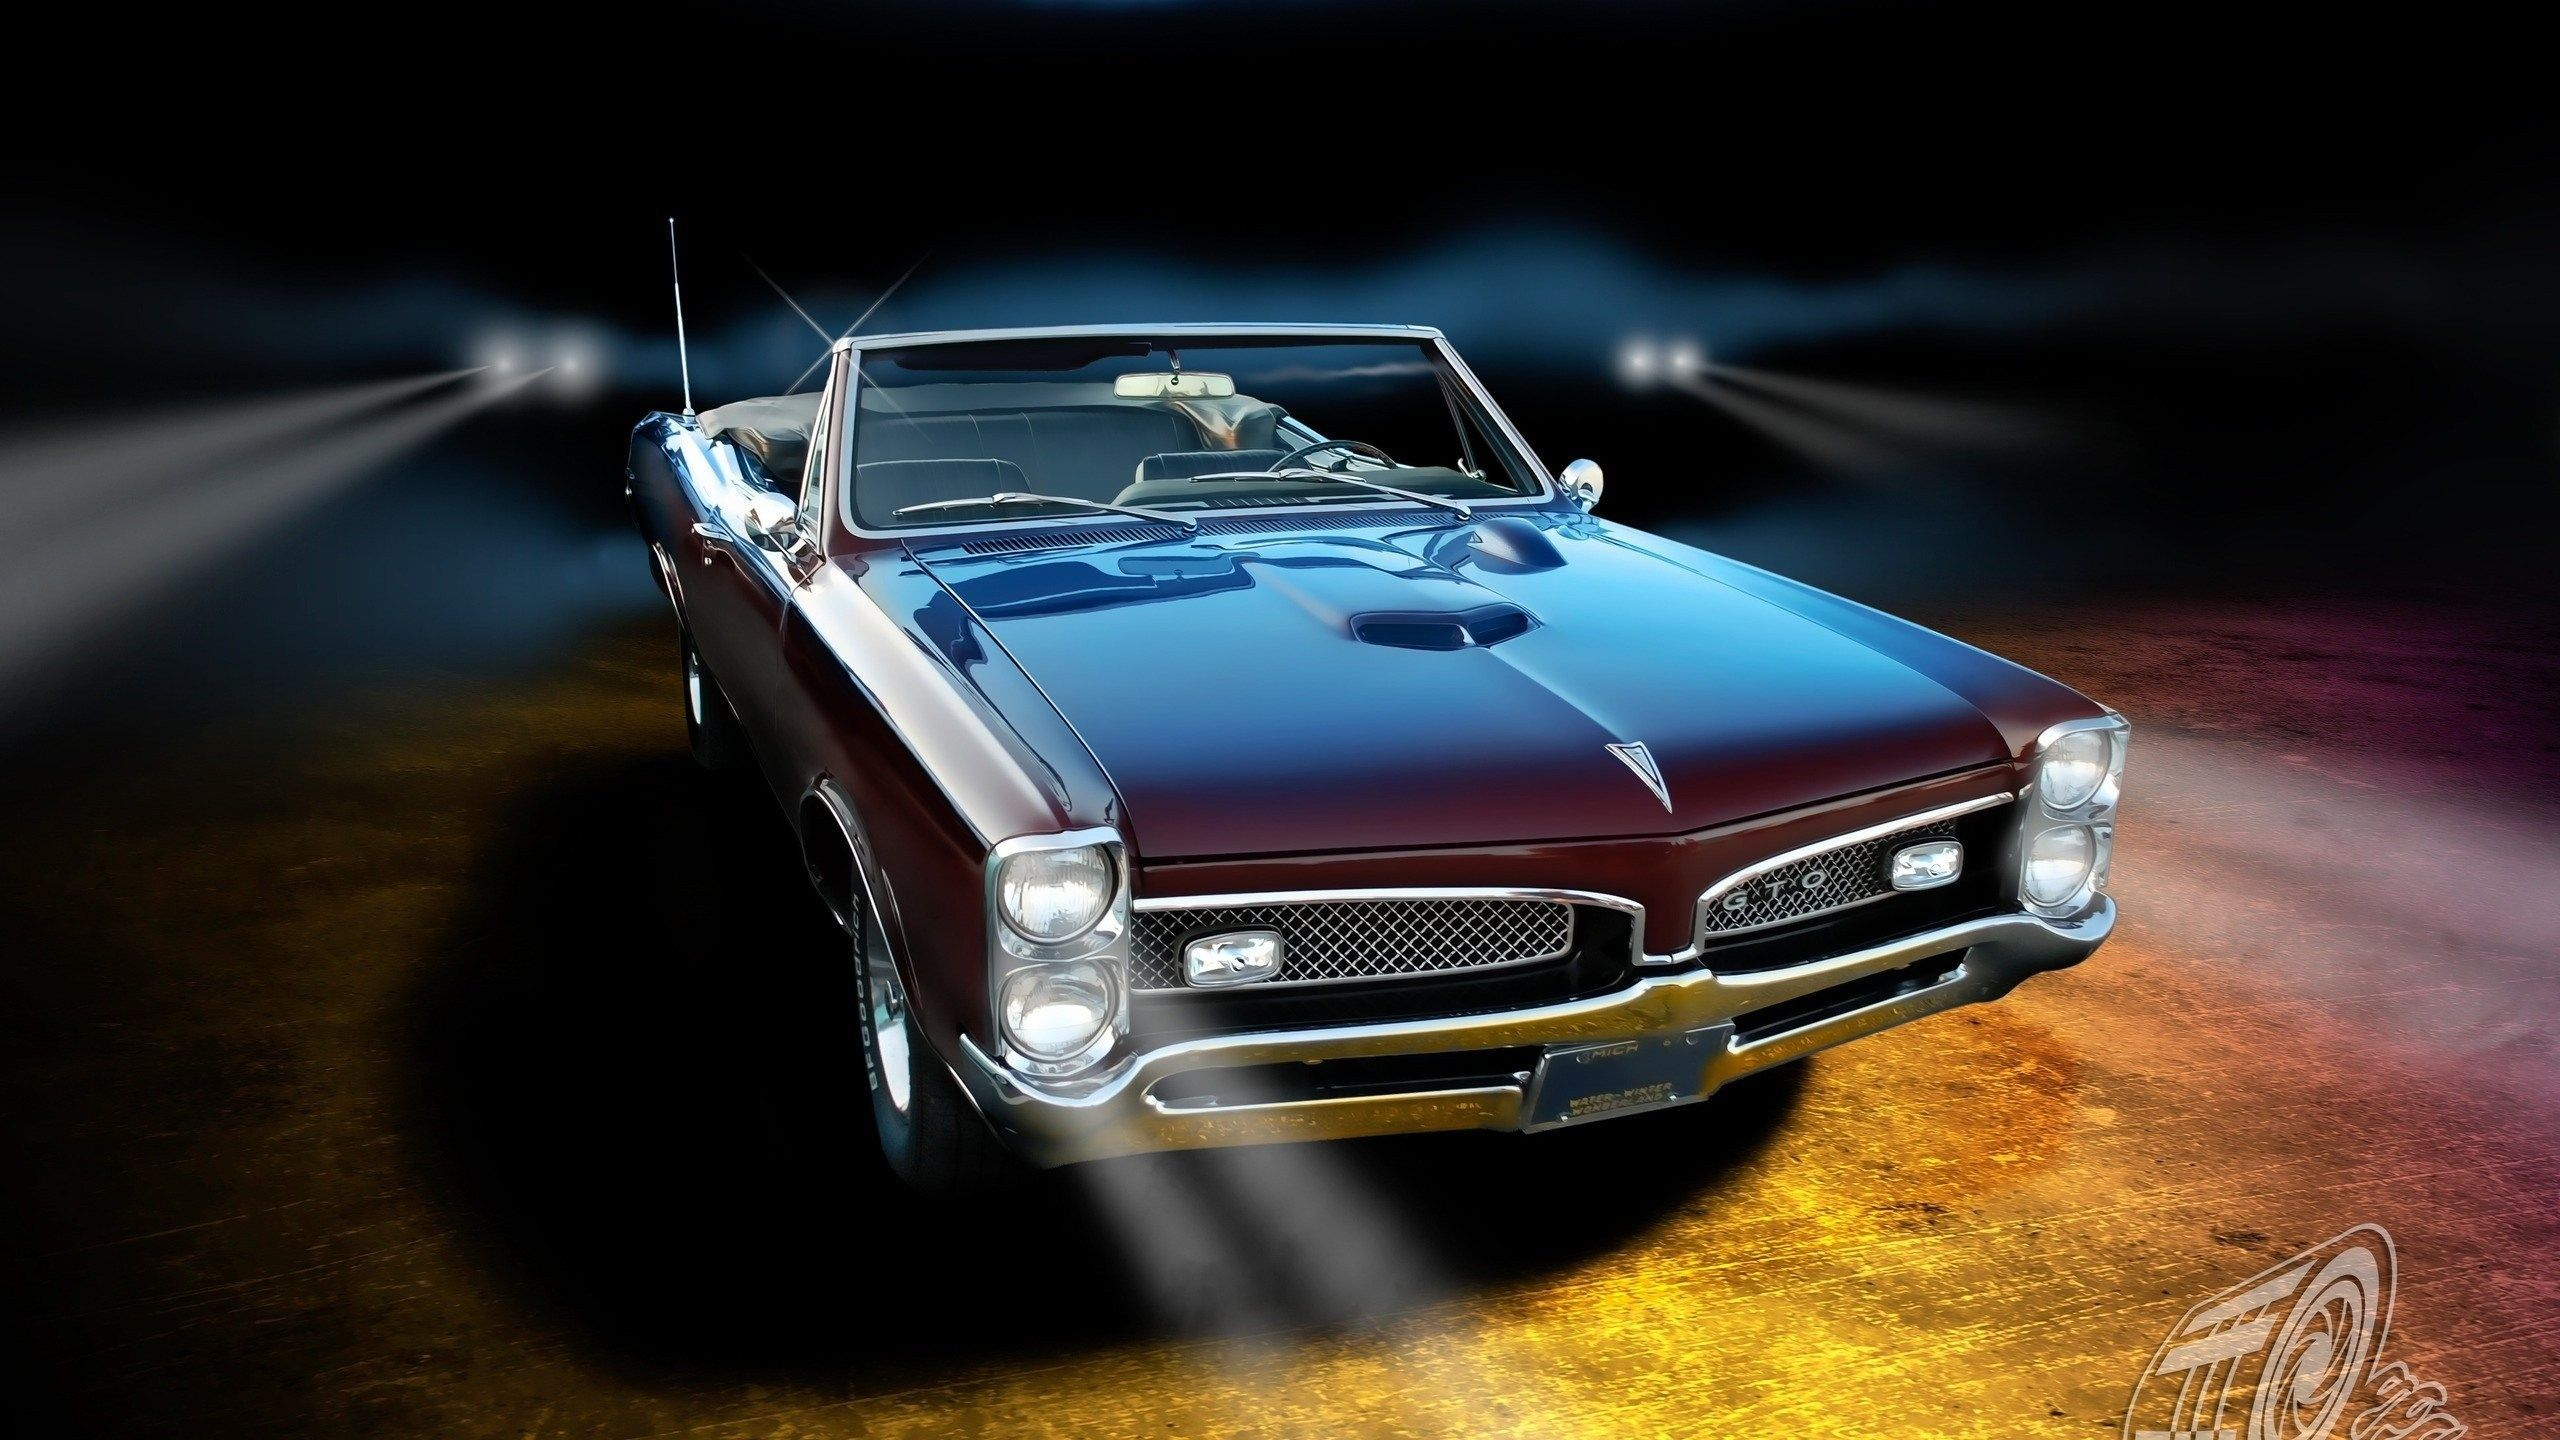 374 kb / 17 views. Old School Muscle Cars Wallpapers On Wallpaperdog